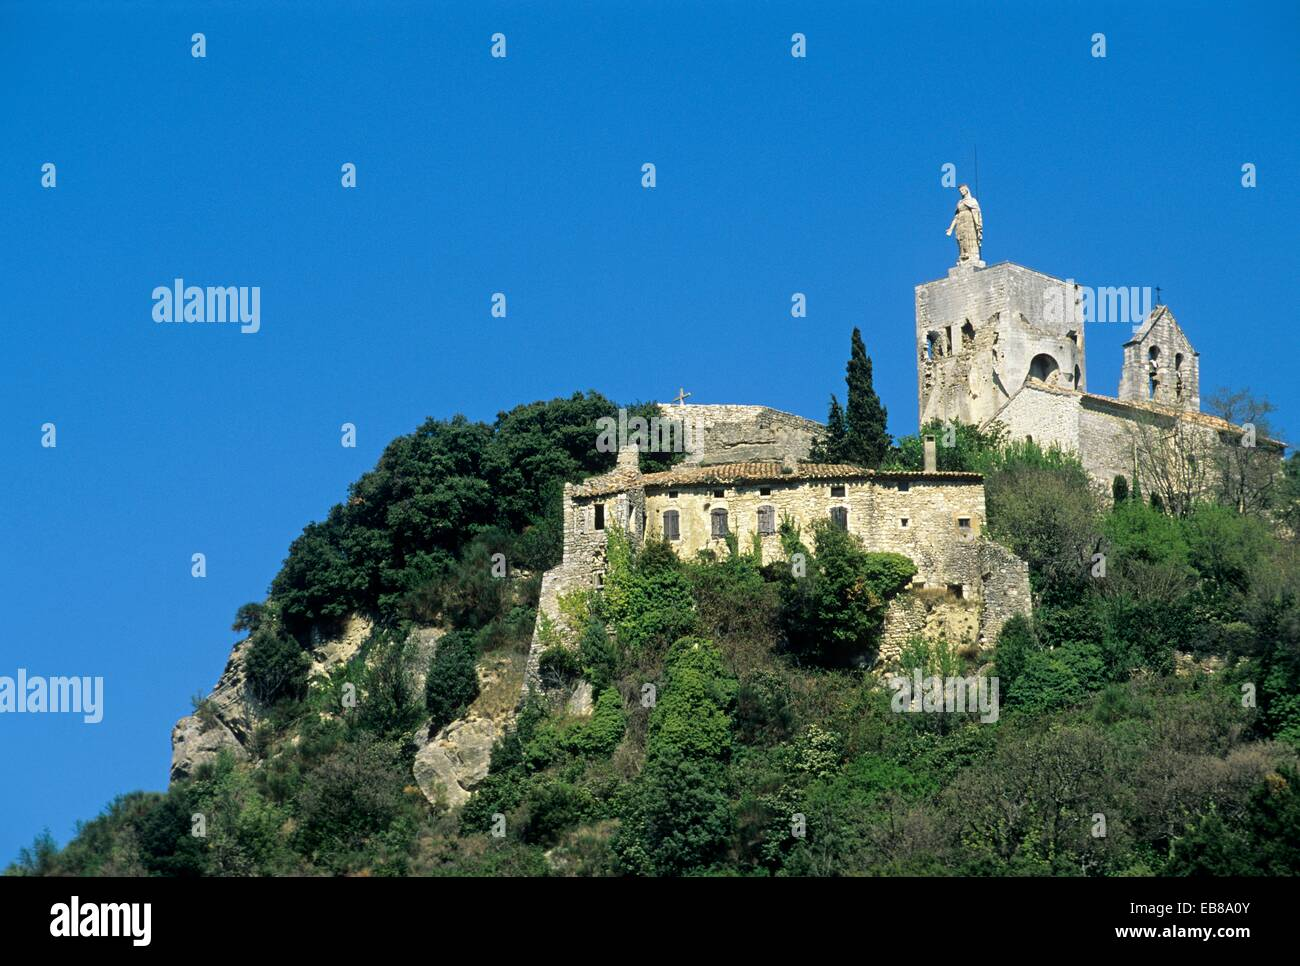 Knights Templar Tower overlooking the village of Clansayes, Drome department, region of Rhone-Alpes, France, Europe - Stock Image